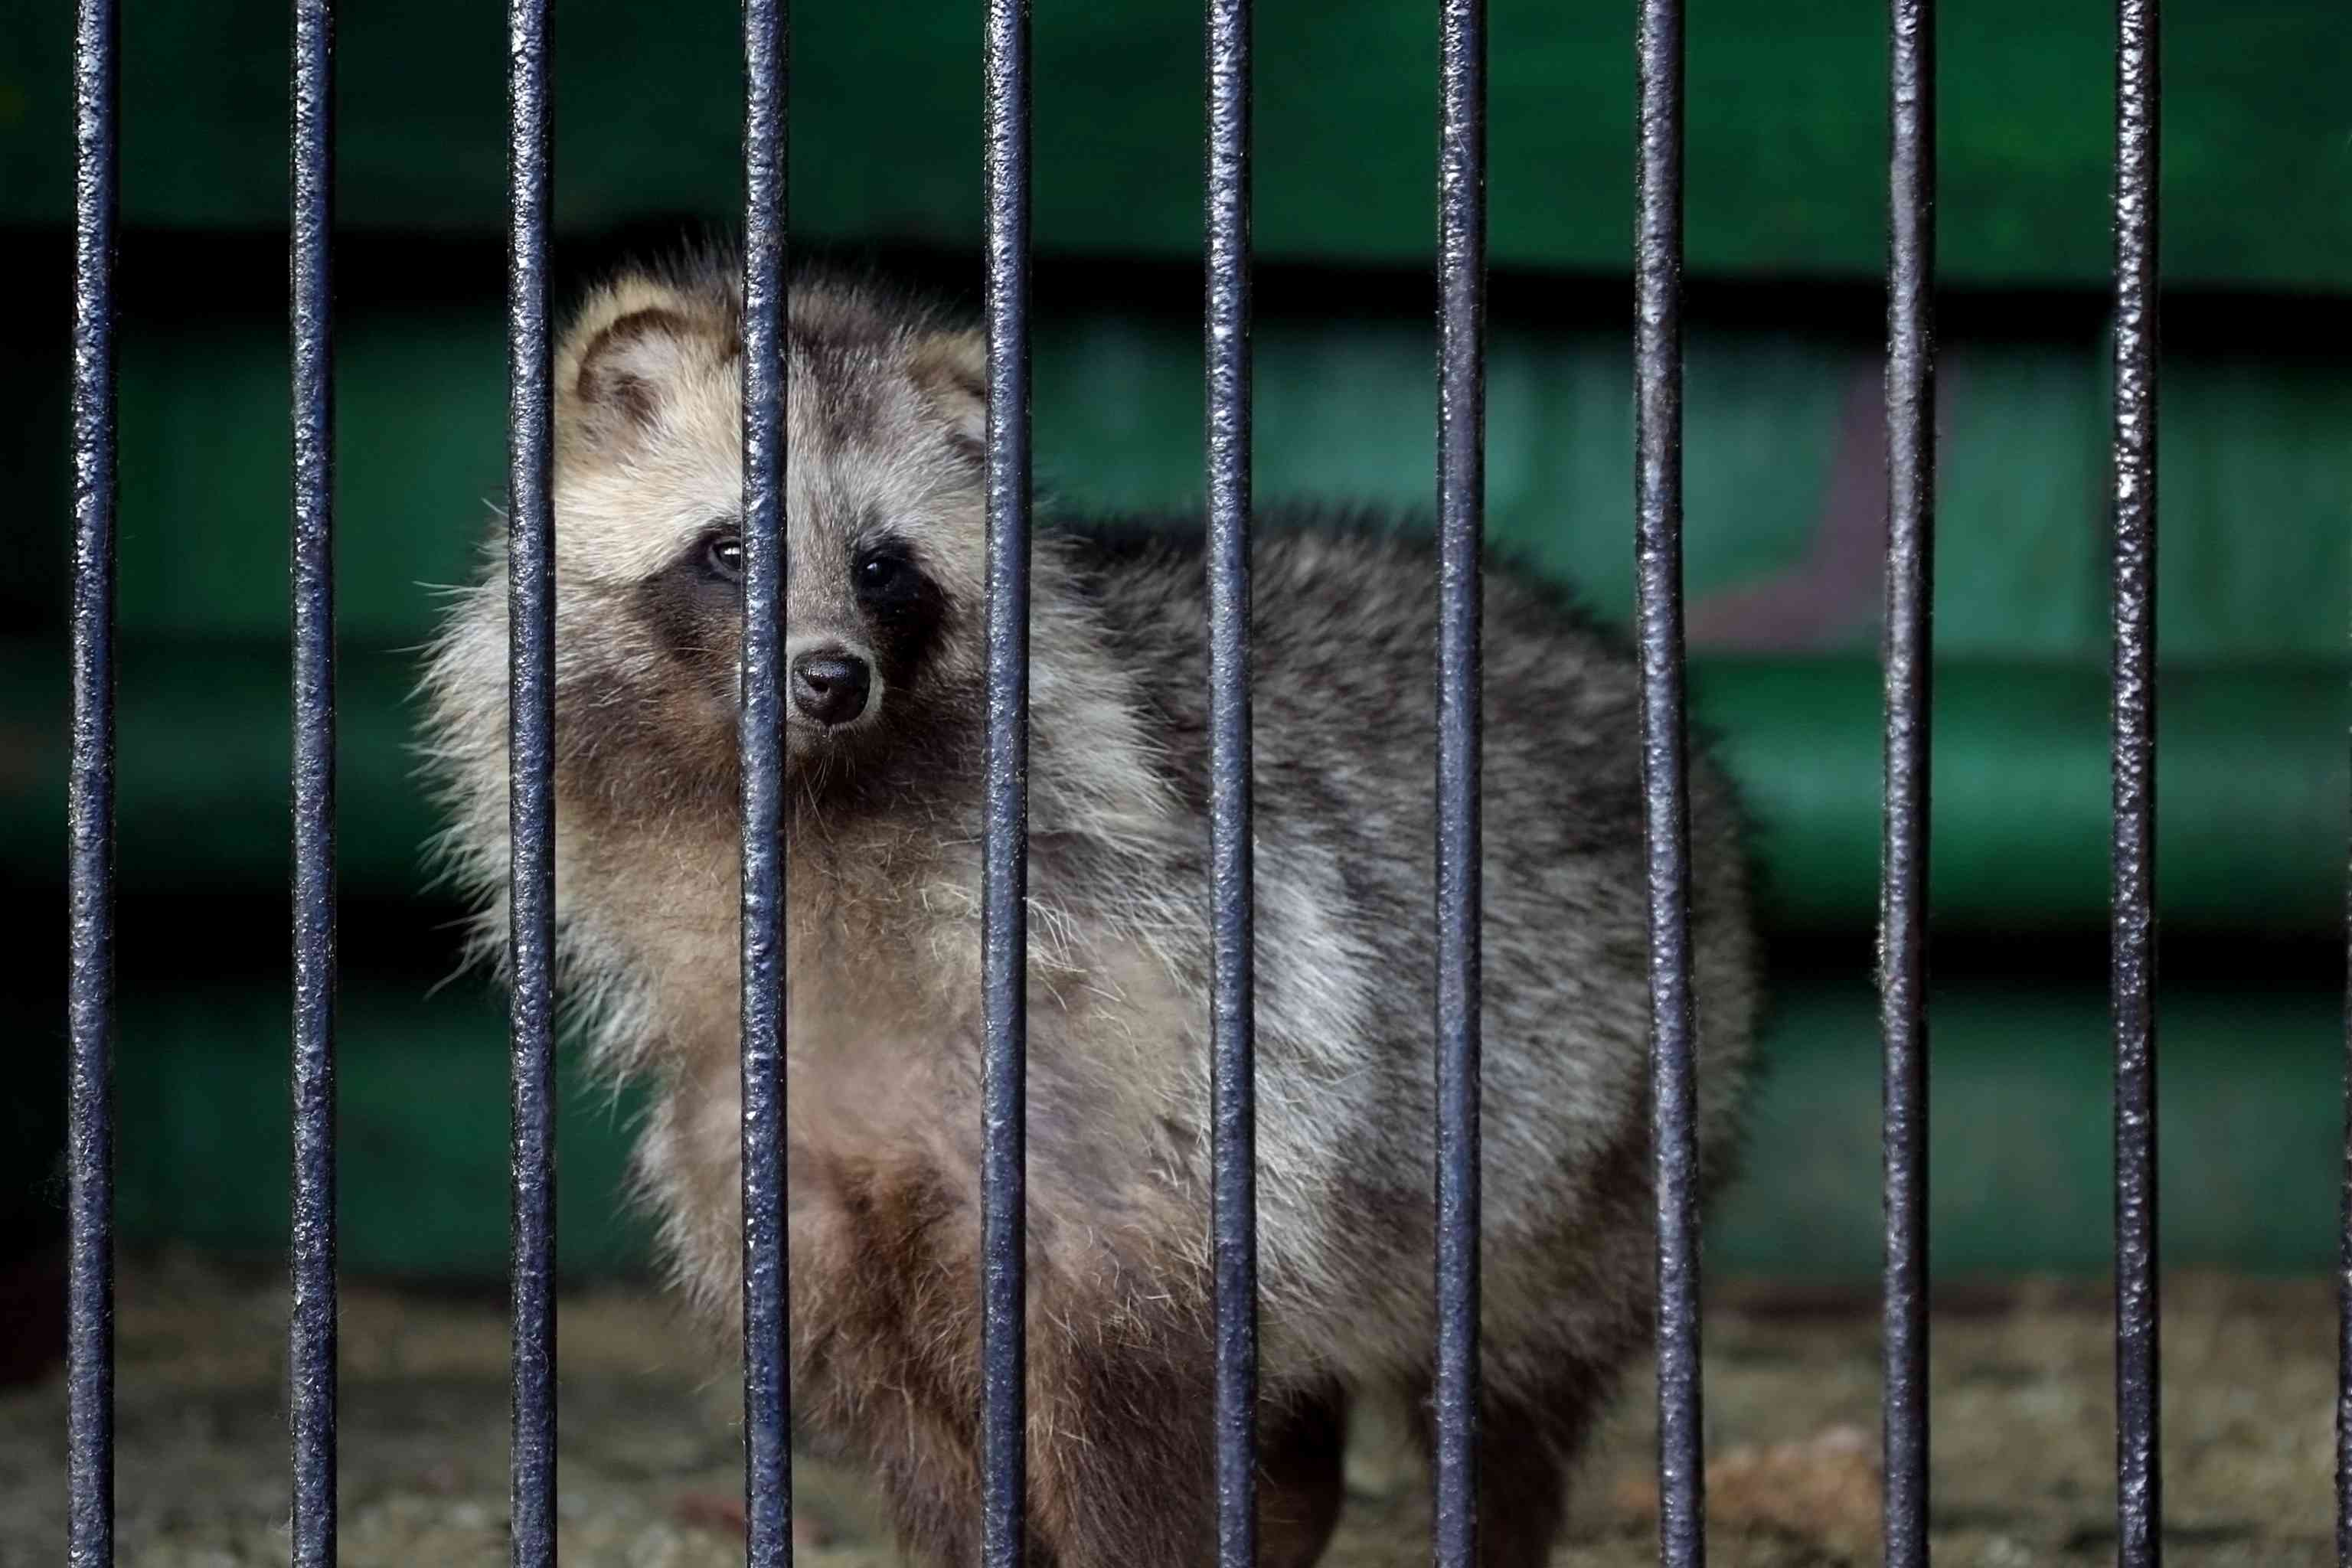 A tanuki stands in a cage